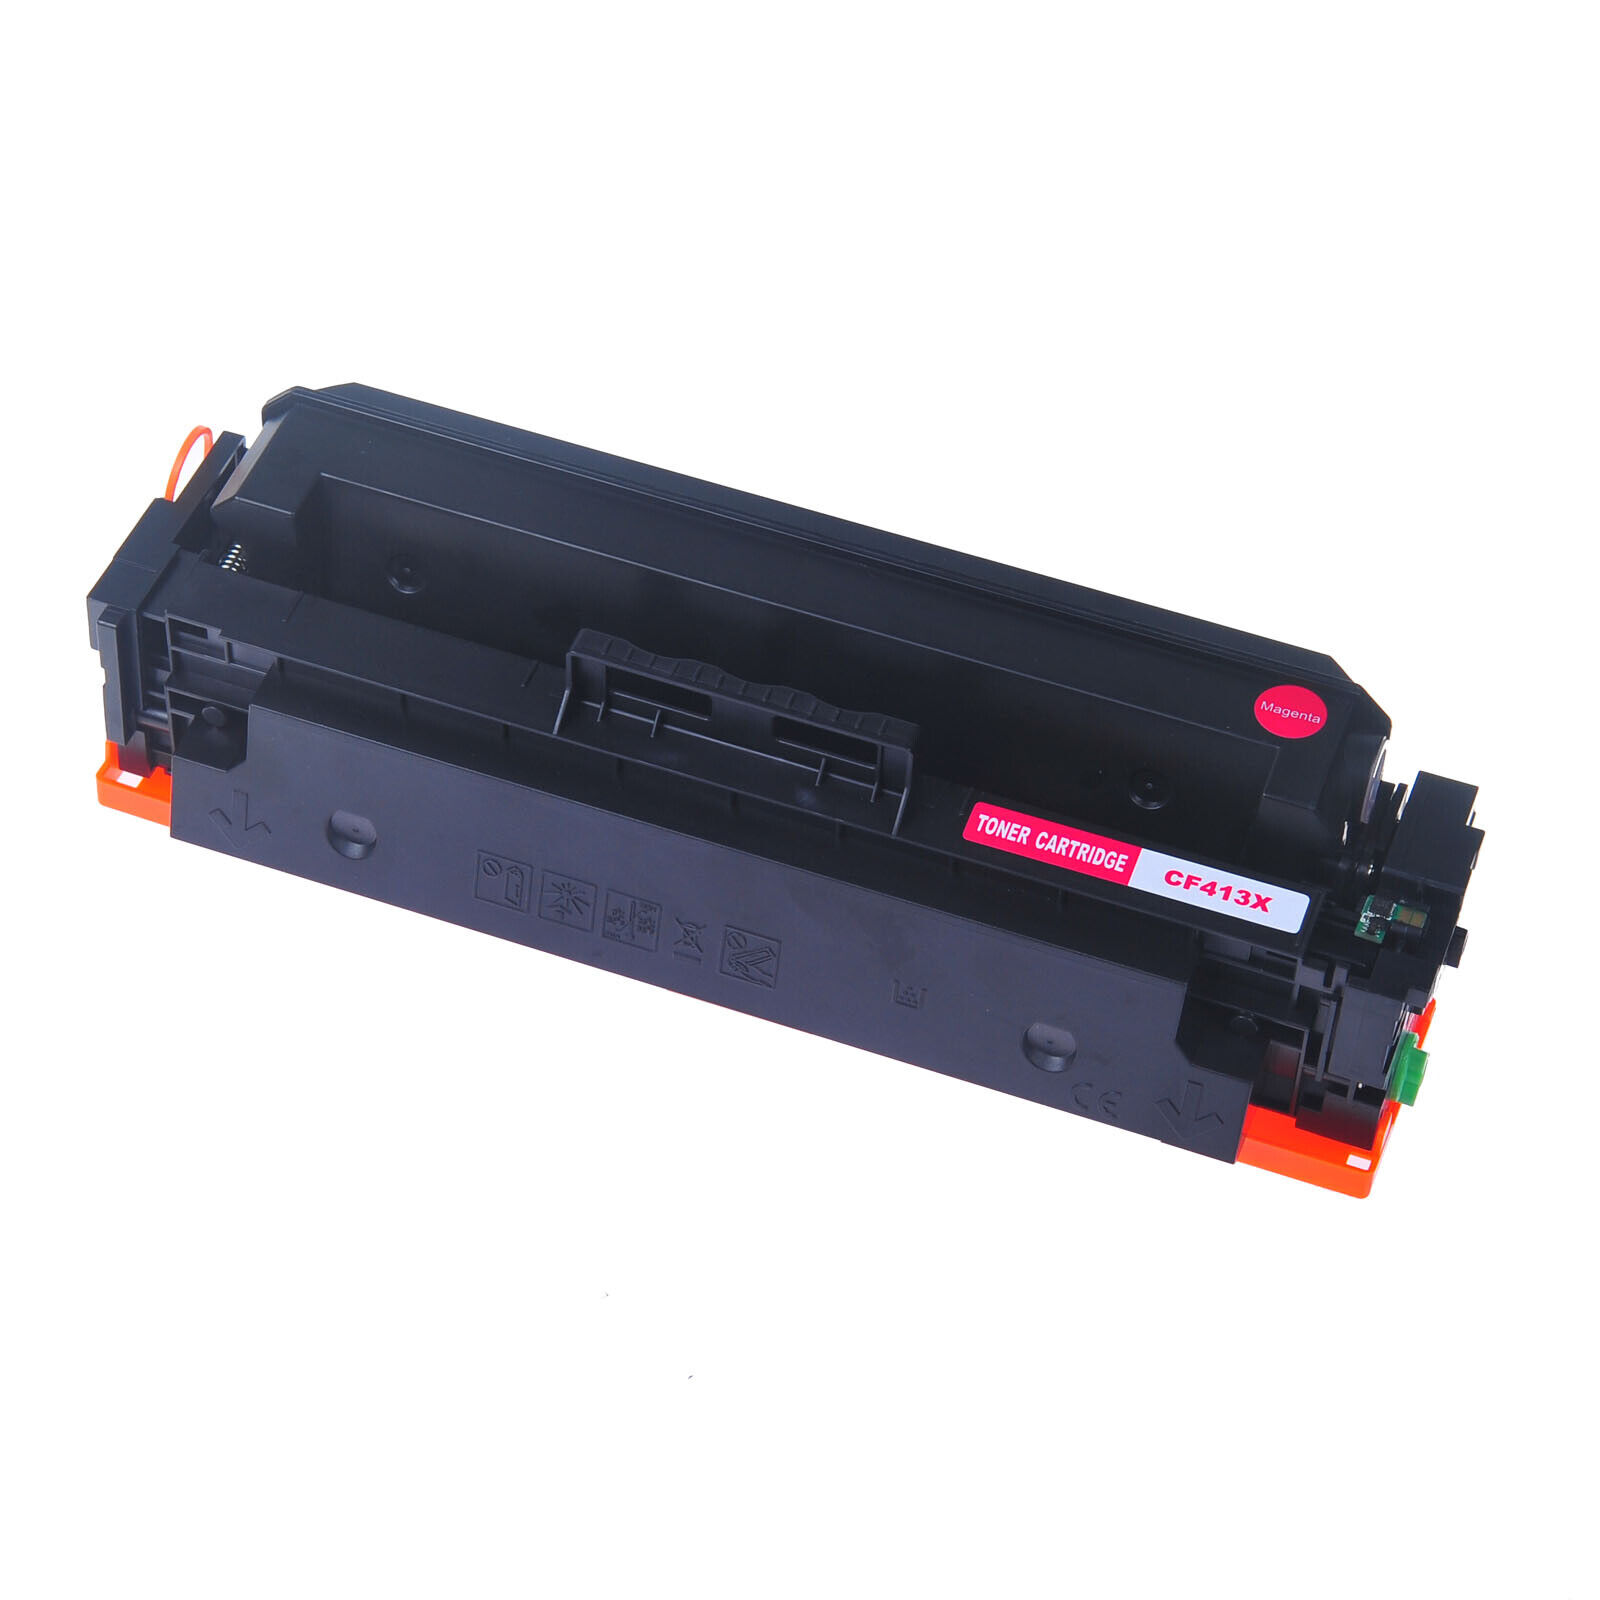 4PK CF413X MG Toner cartridge 477X For HP Color LaserJet Pro M452dn MFP M477fdn